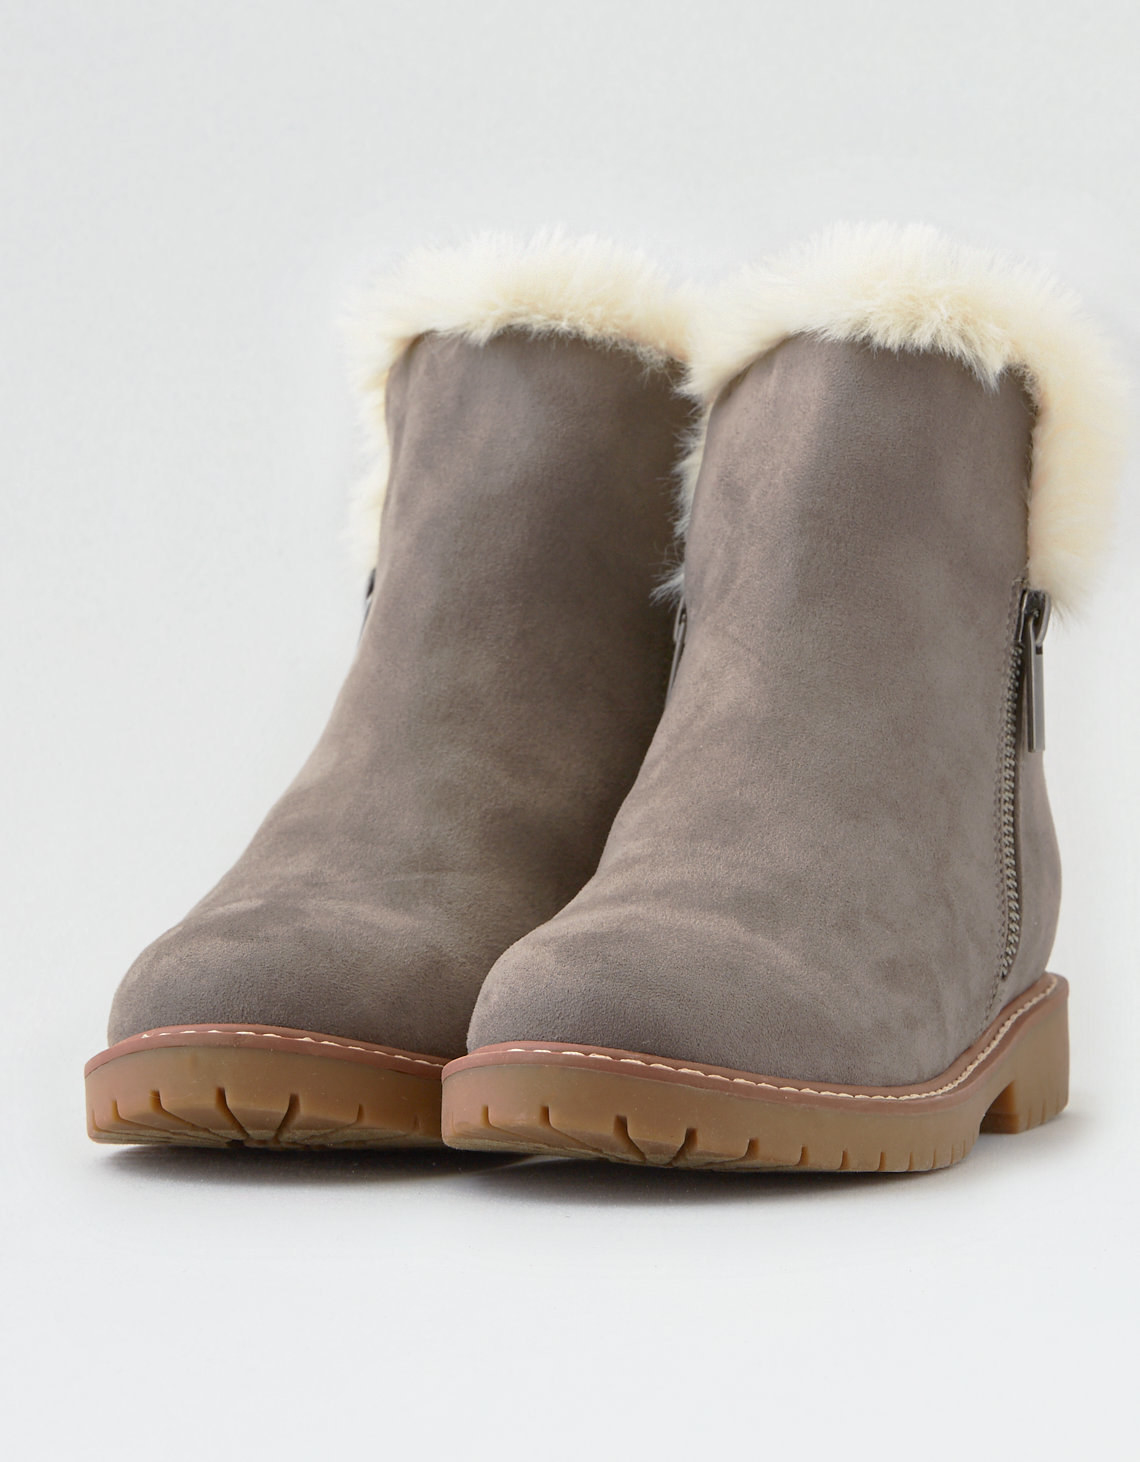 NEW OLDER GIRLS WOMENS FLAT FAUX SUEDE WARM FURRY WINTER CALF SCHOOL BOOTS SHOES